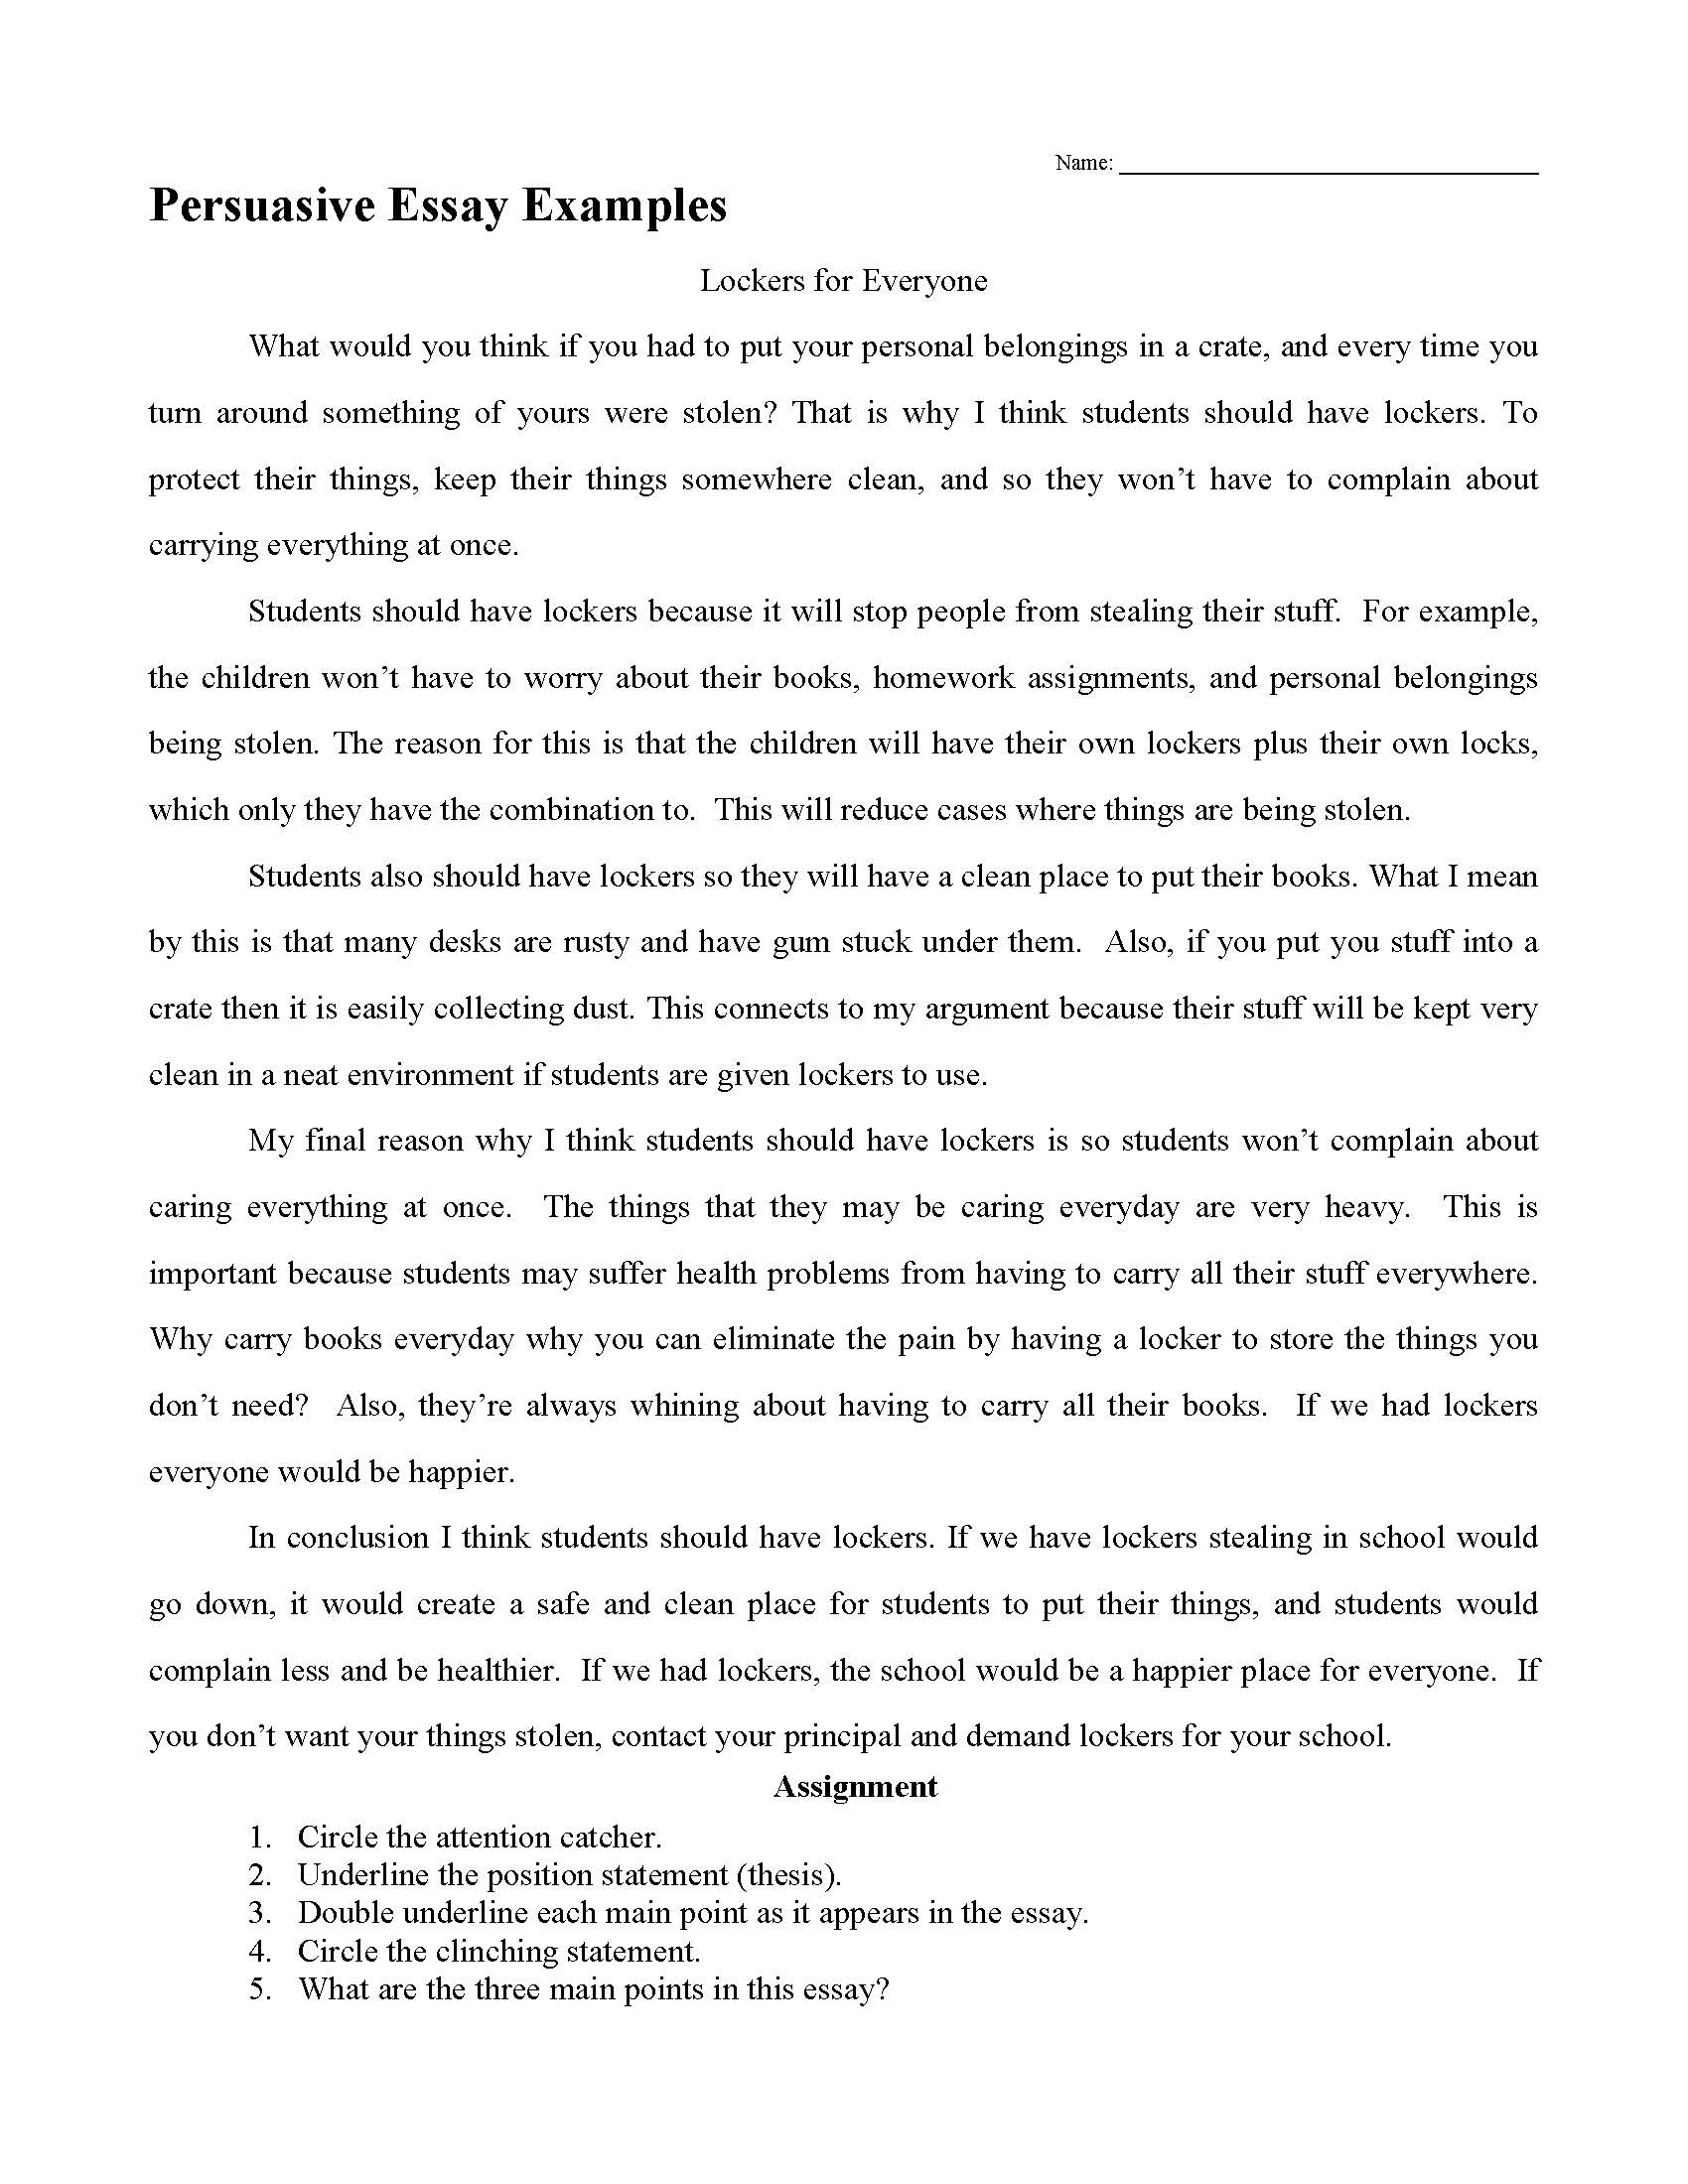 001 Persuasive Essays Impressive Essay Examples For Middle School Good Topics 4th Grade 5th Full